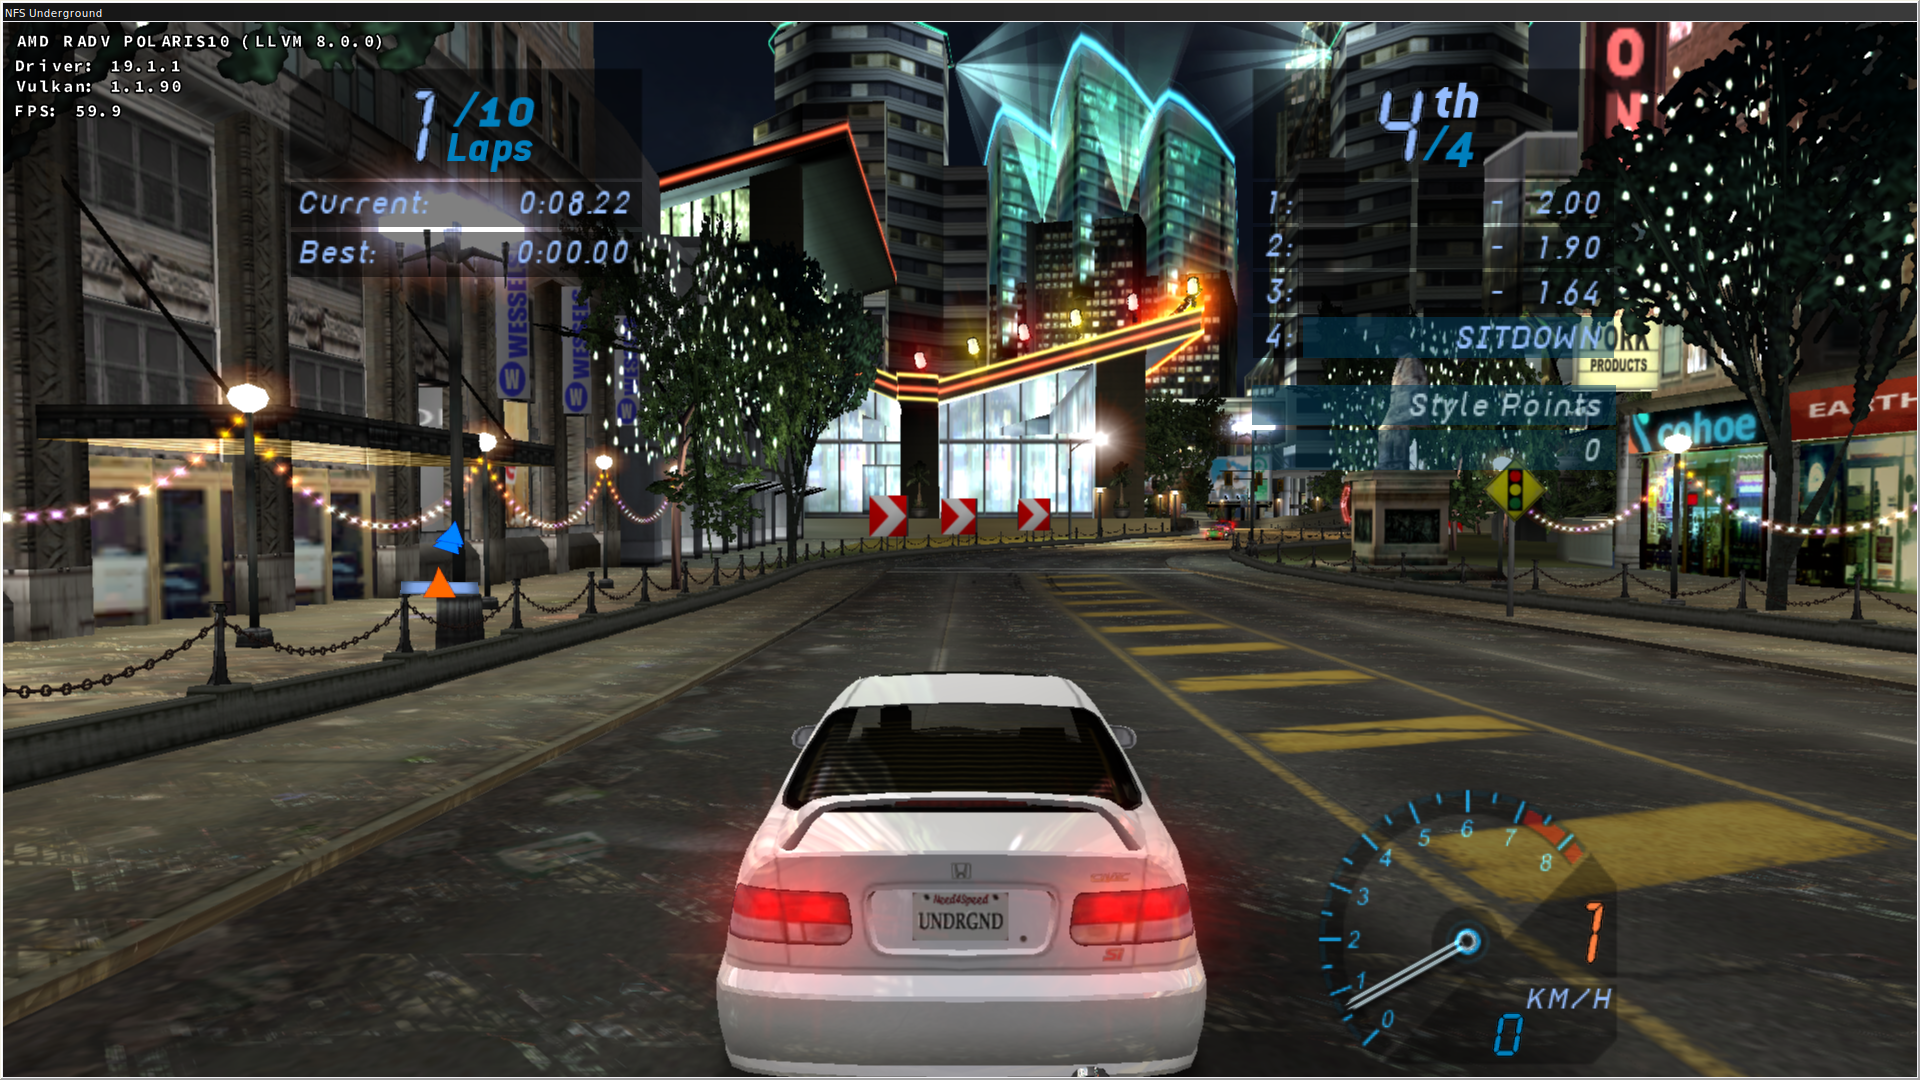 Need for Speed Underground: Artifacts on reflections, visible window